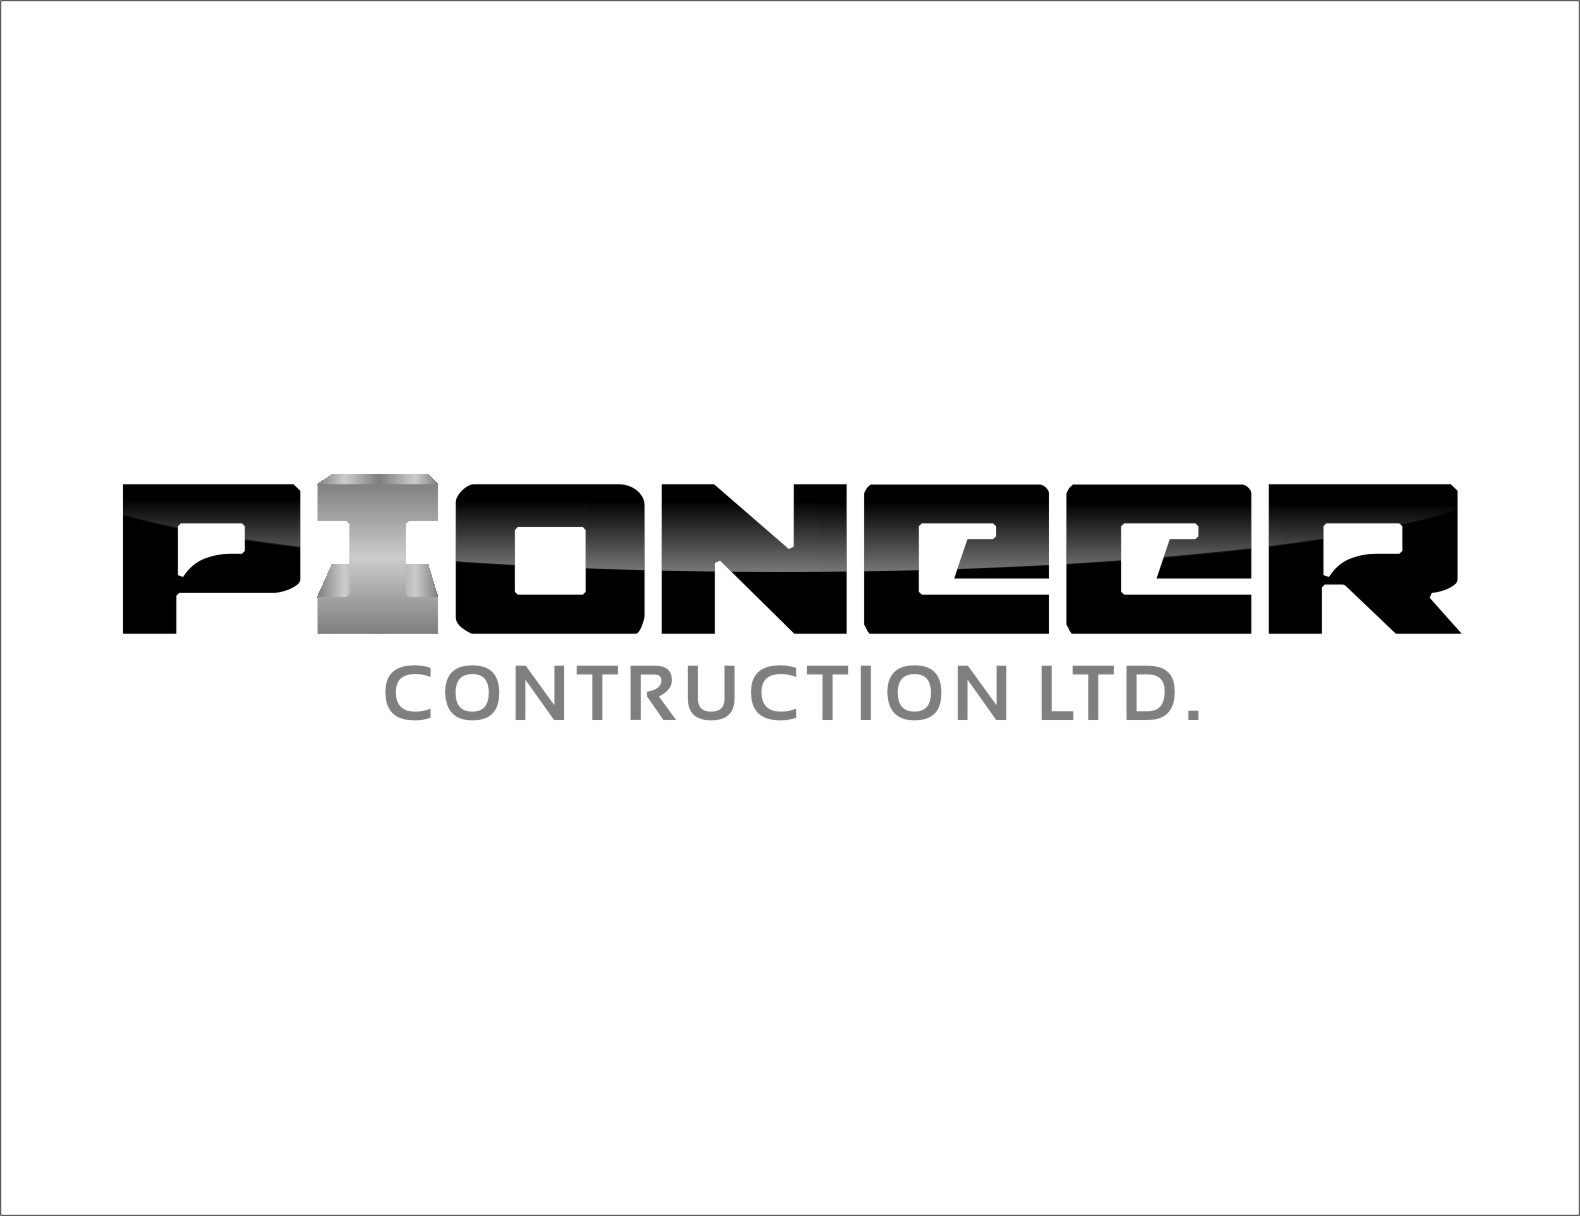 Logo Design by Ngepet_art - Entry No. 112 in the Logo Design Contest Imaginative Logo Design for  Pioneer Construction Ltd.